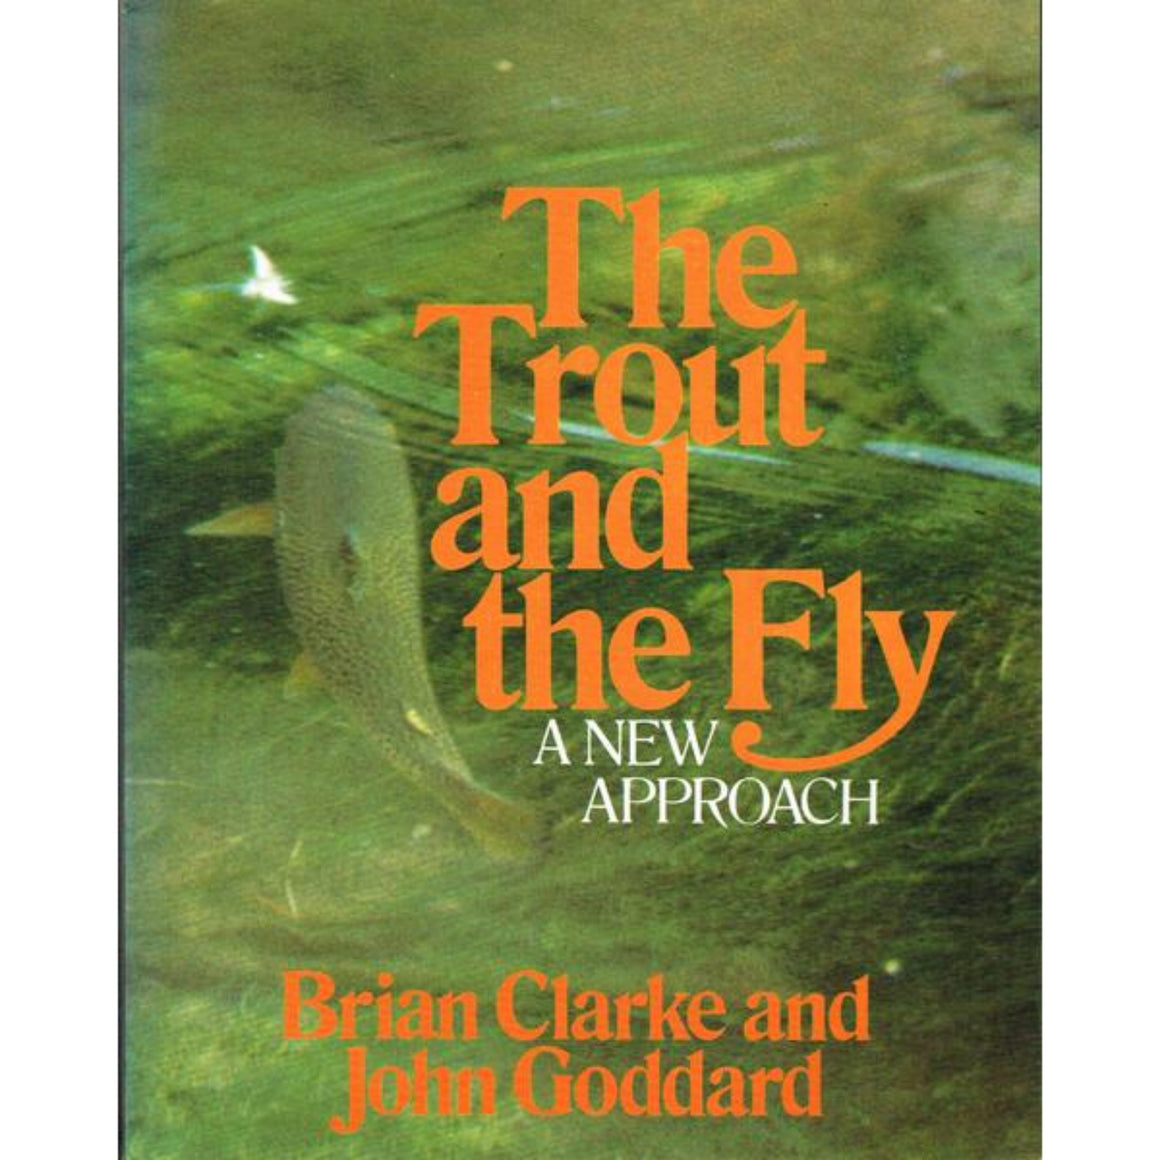 The Trout and Fly: A New Approach (Signed!)